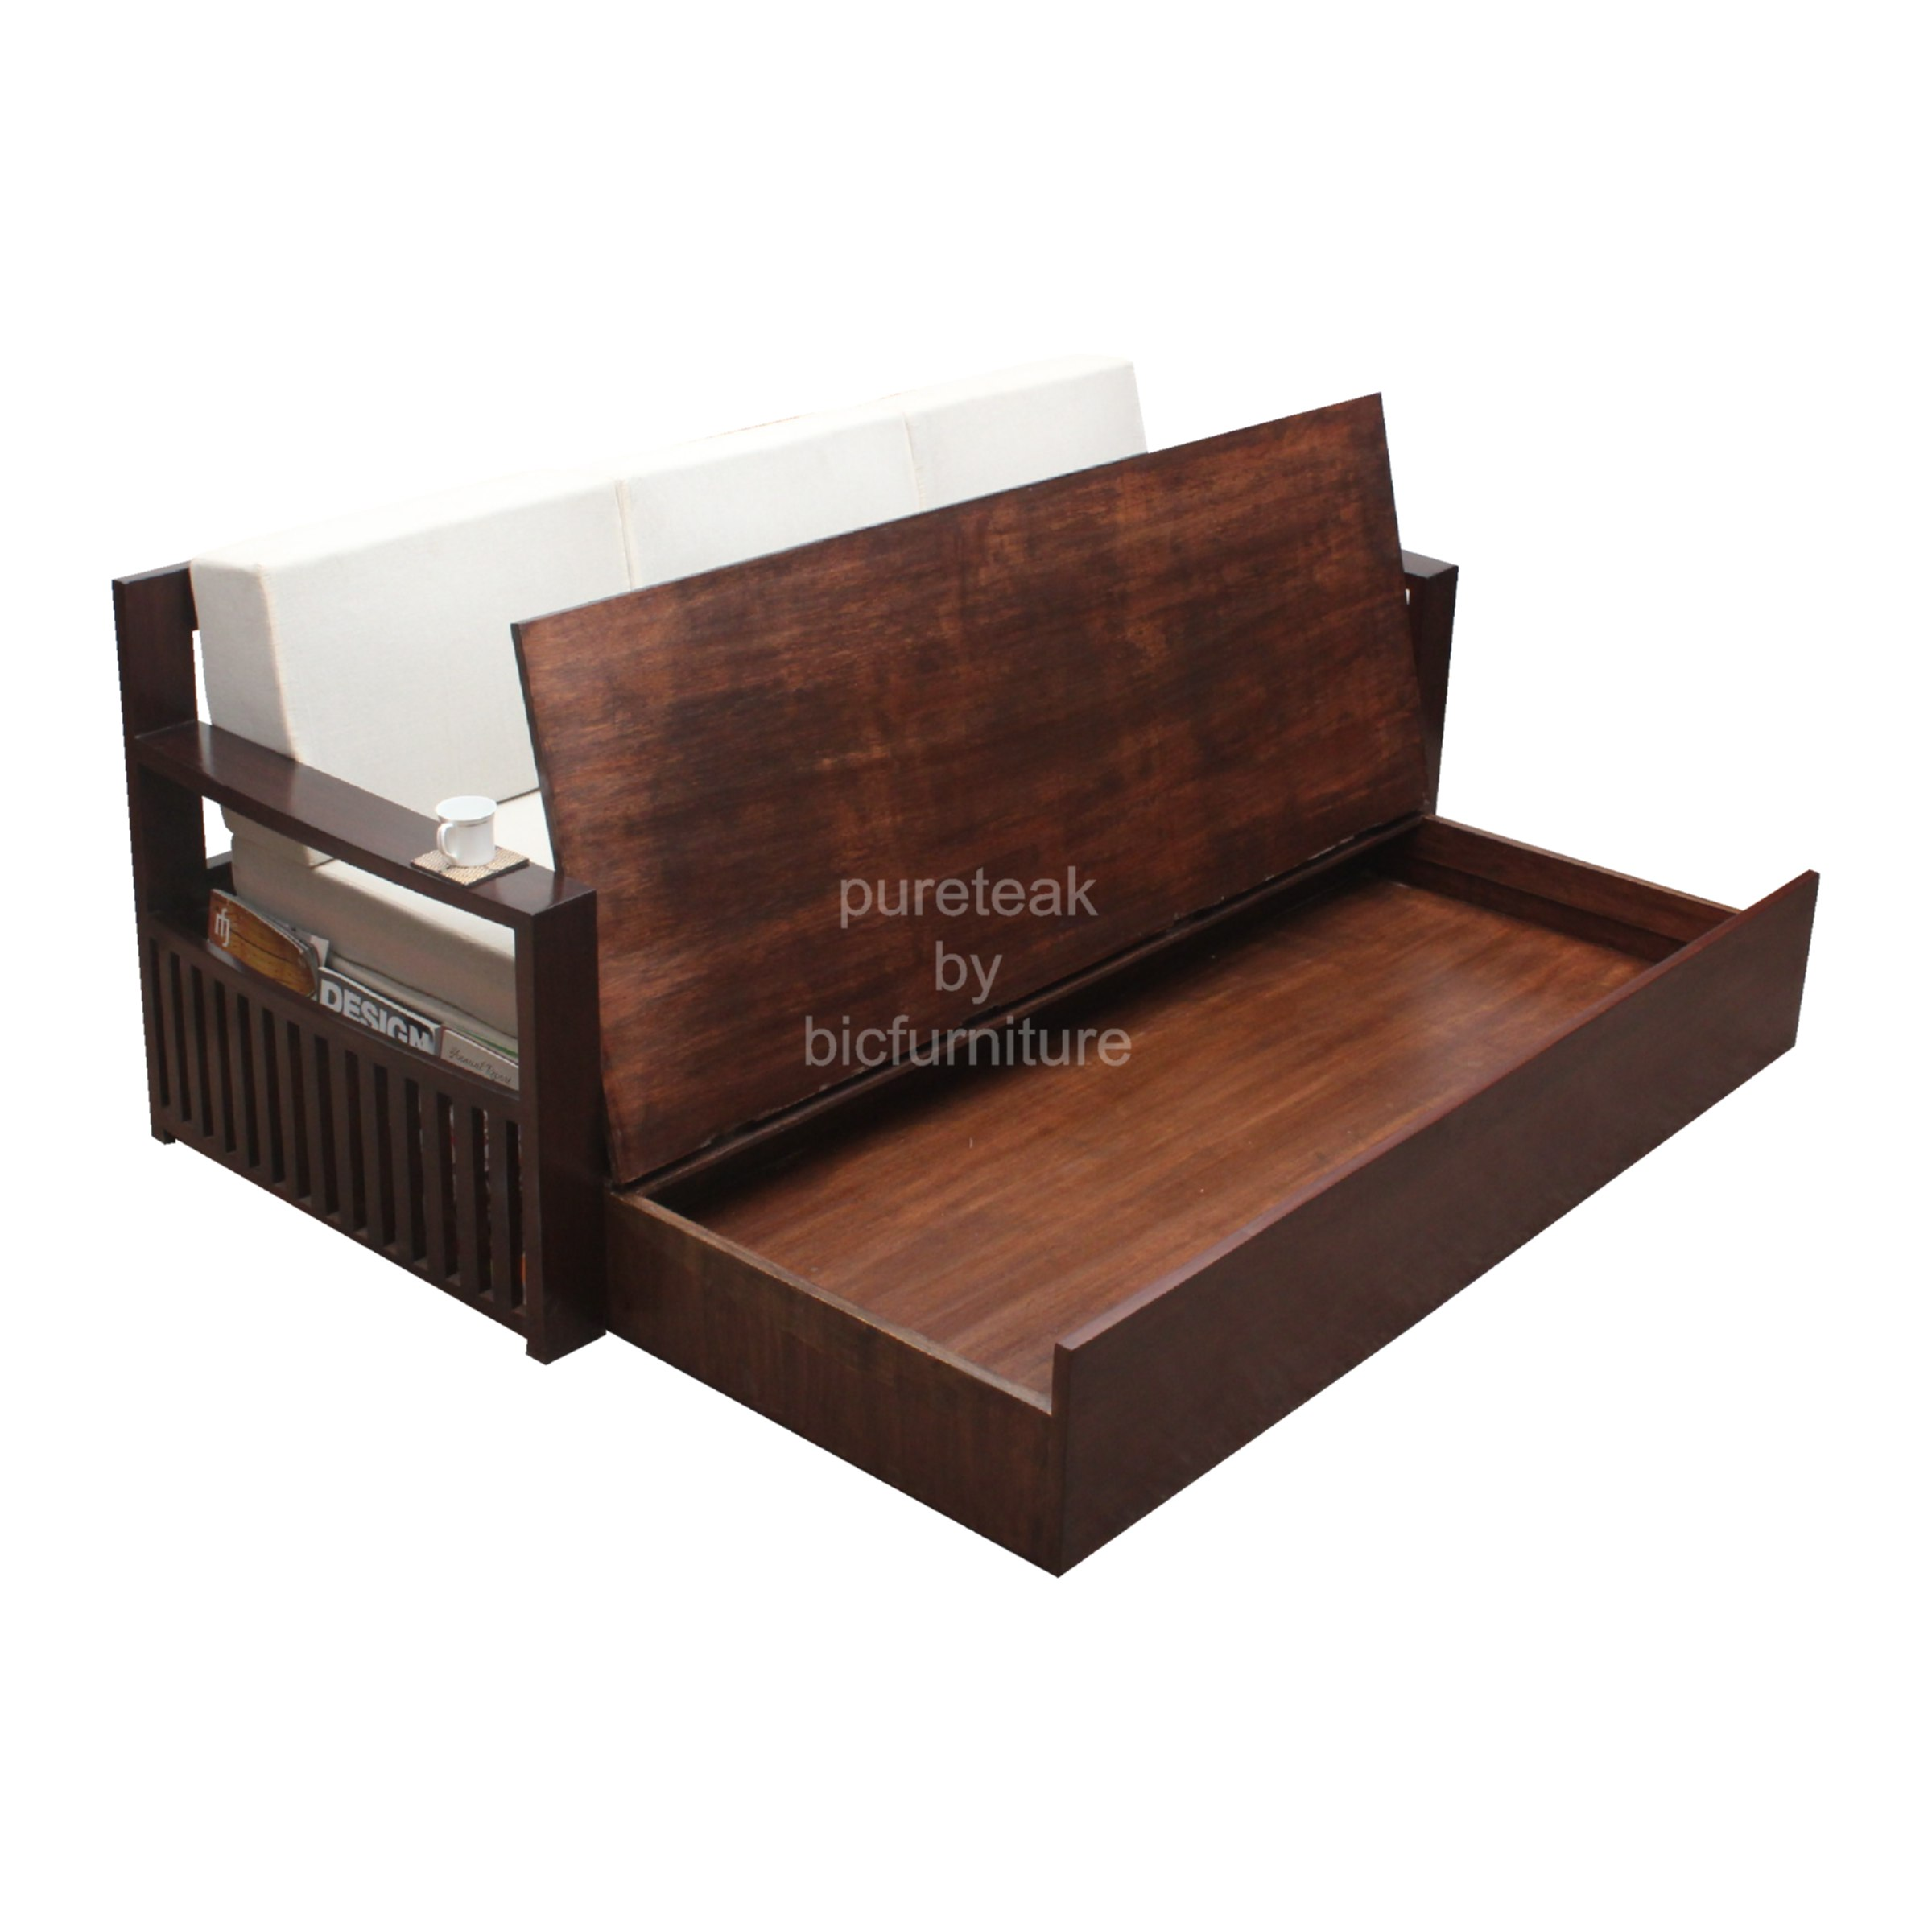 Contemporary_storage_teak_wood_sofa_cum_bed.  Contemporary_storage_teak_wood_sofa_cum_bed_dark_finish